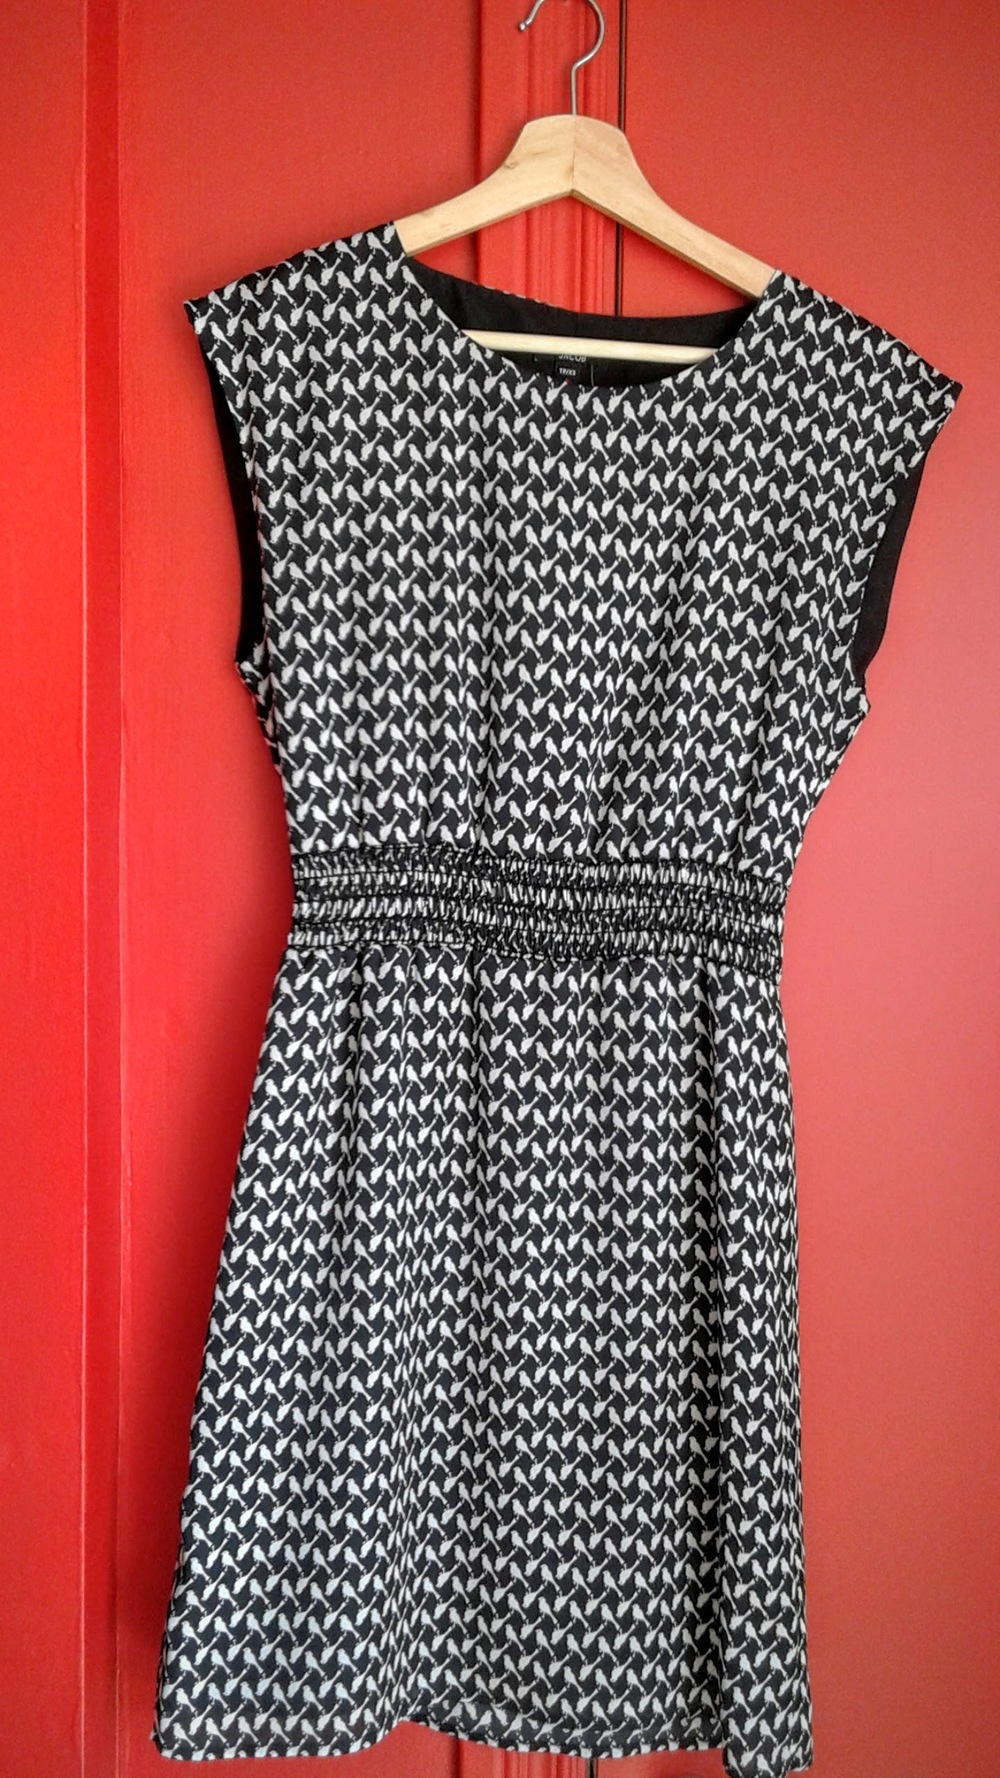 Jacob dress; size XS; $40